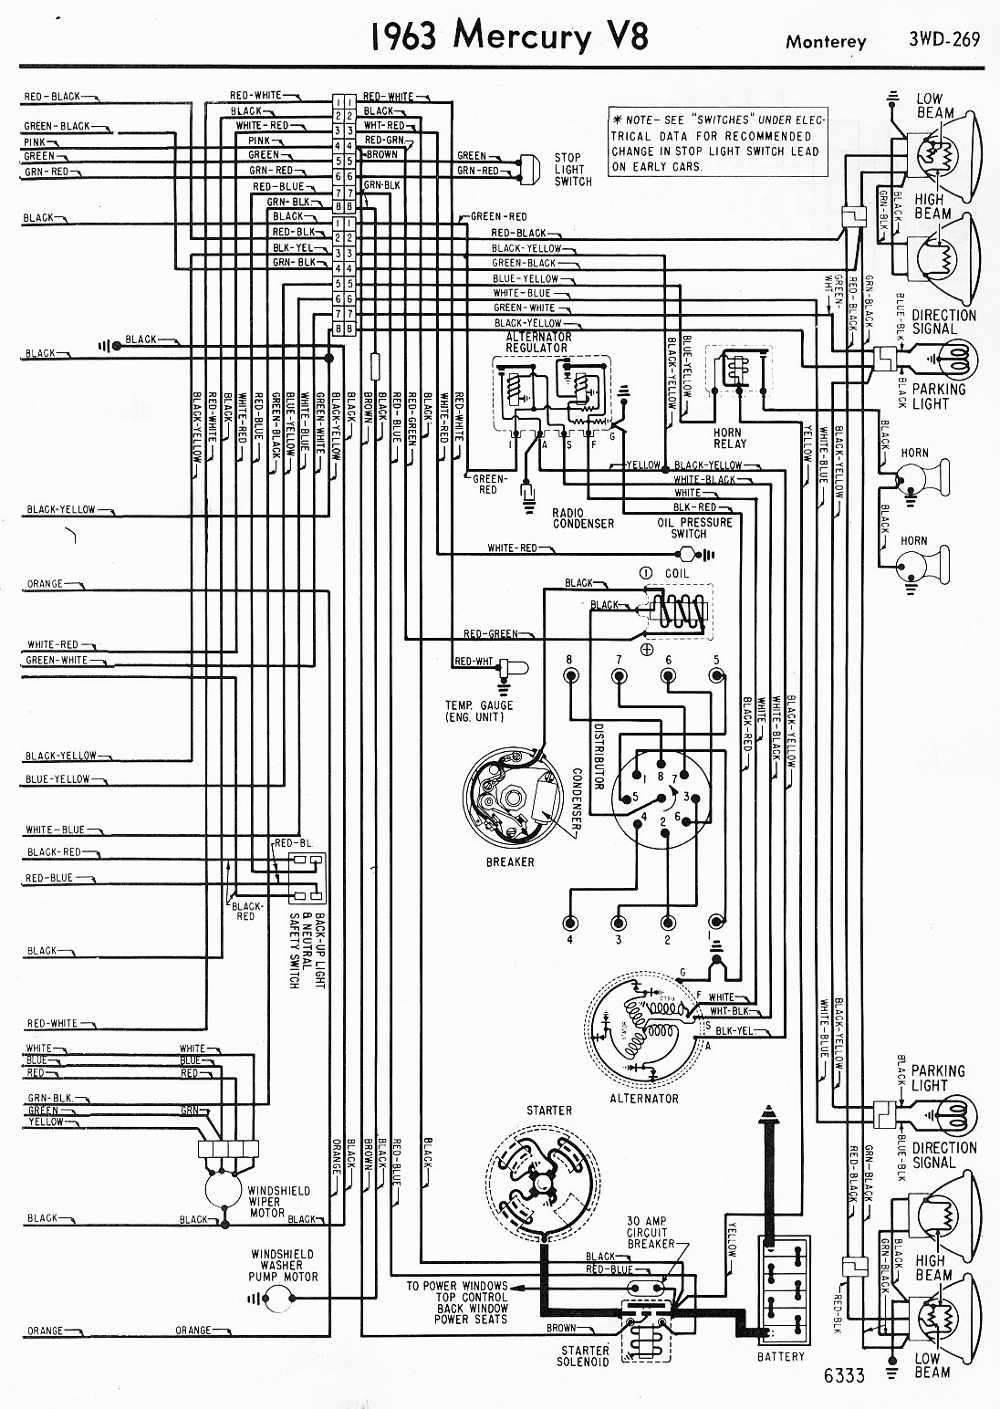 Wiring Diagrams 911: December 2011 on